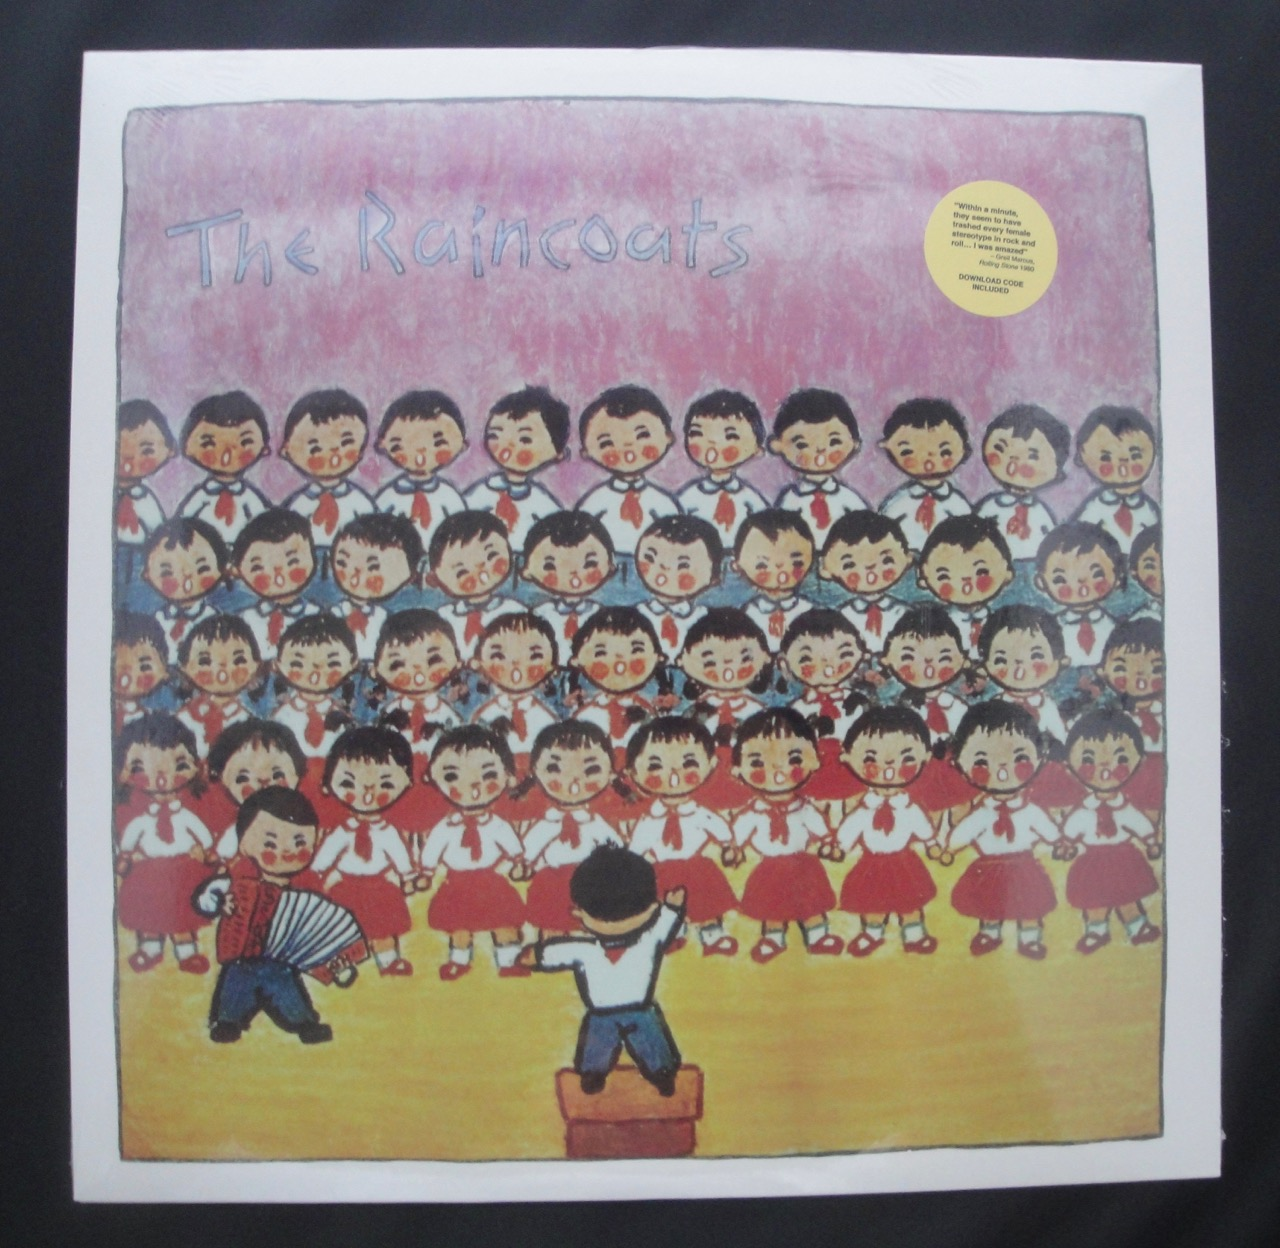 The Raincoats - The Raincoats - Vinyl, LP, Reissue, Kill Rock Stars, 2017